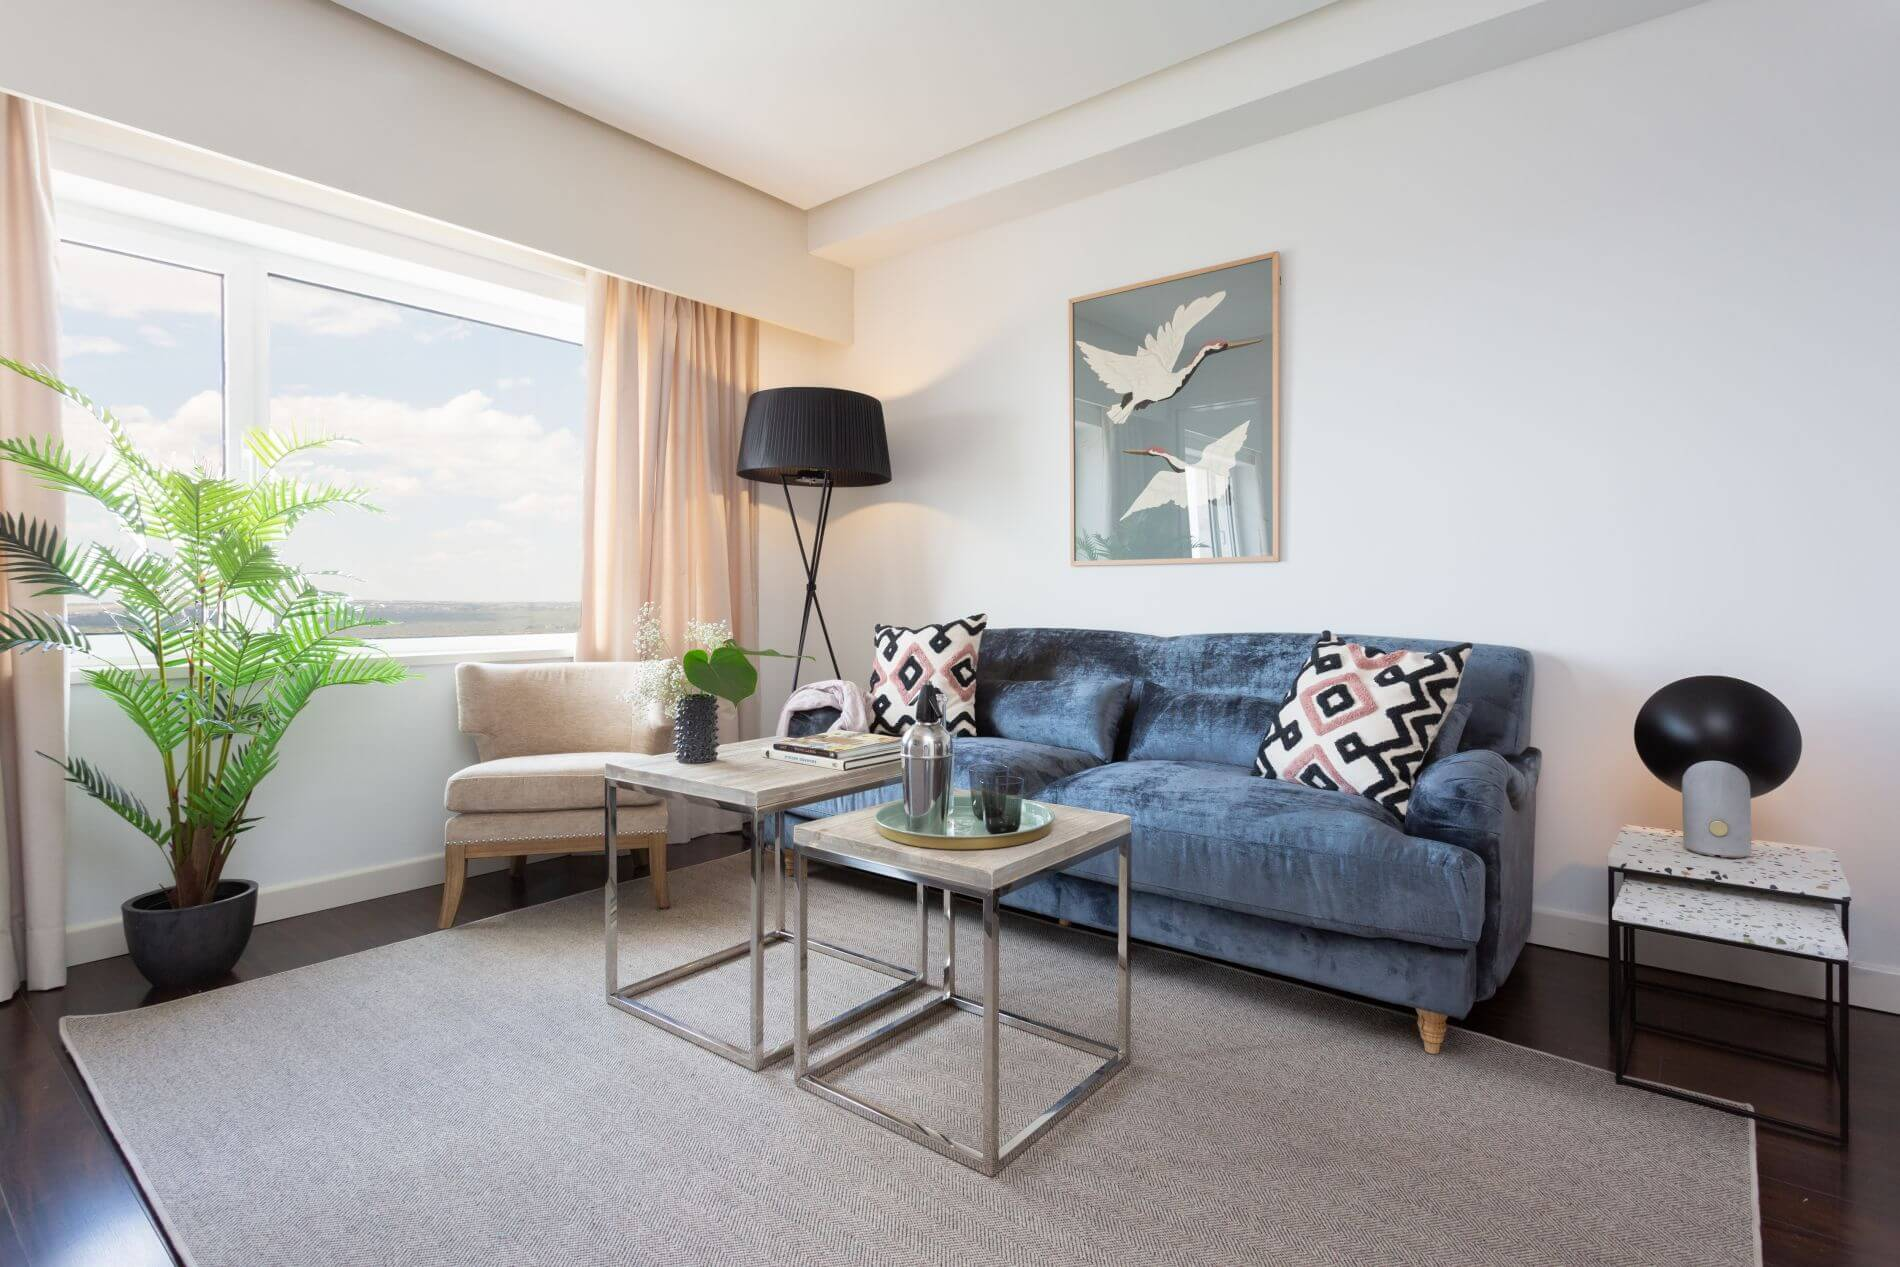 Serviced apartment in Madrid with great views and a gym in the building